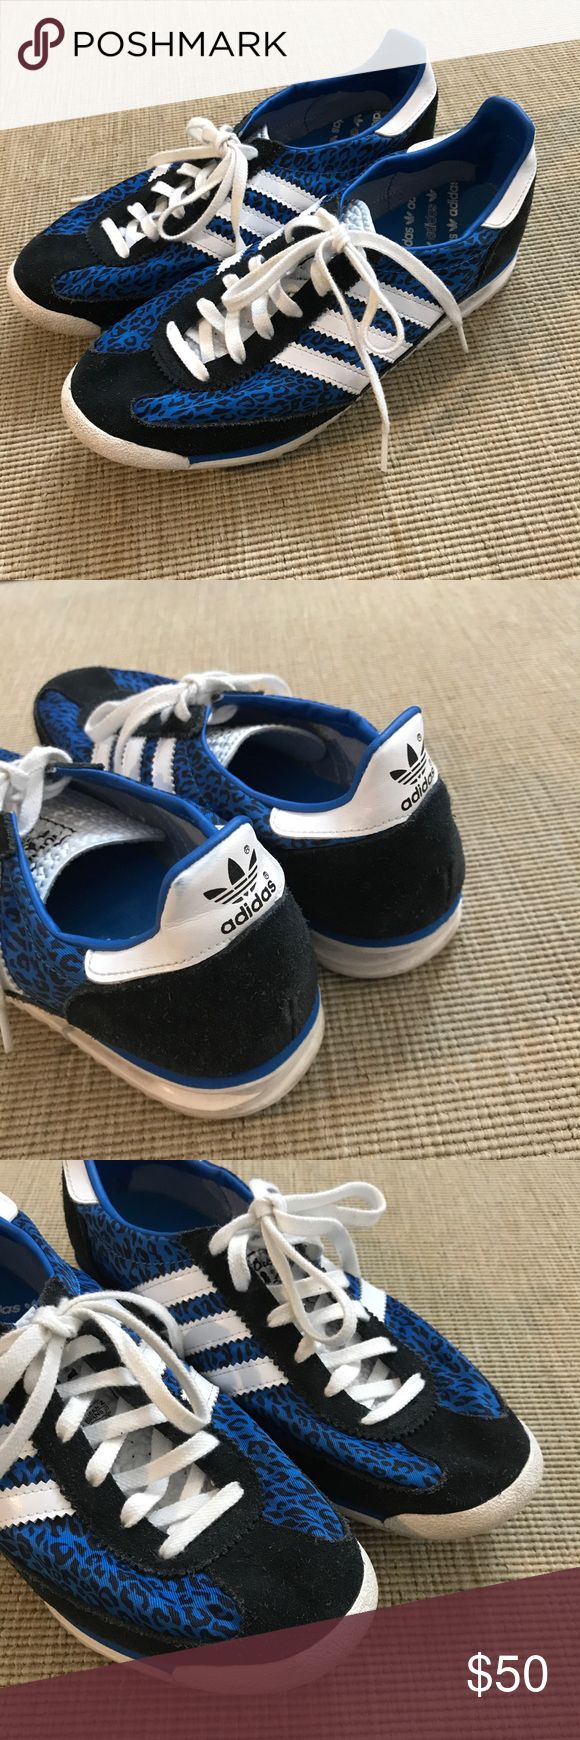 Adidas Womens Retro Running Shoes Blue Leopard 7.5 Adidas Originals SL72 W SL 72 2013 Womens Retro Running Shoes Blue Leopard. Barely worn these look new! Size 7.5 adidas Shoes Athletic Shoes